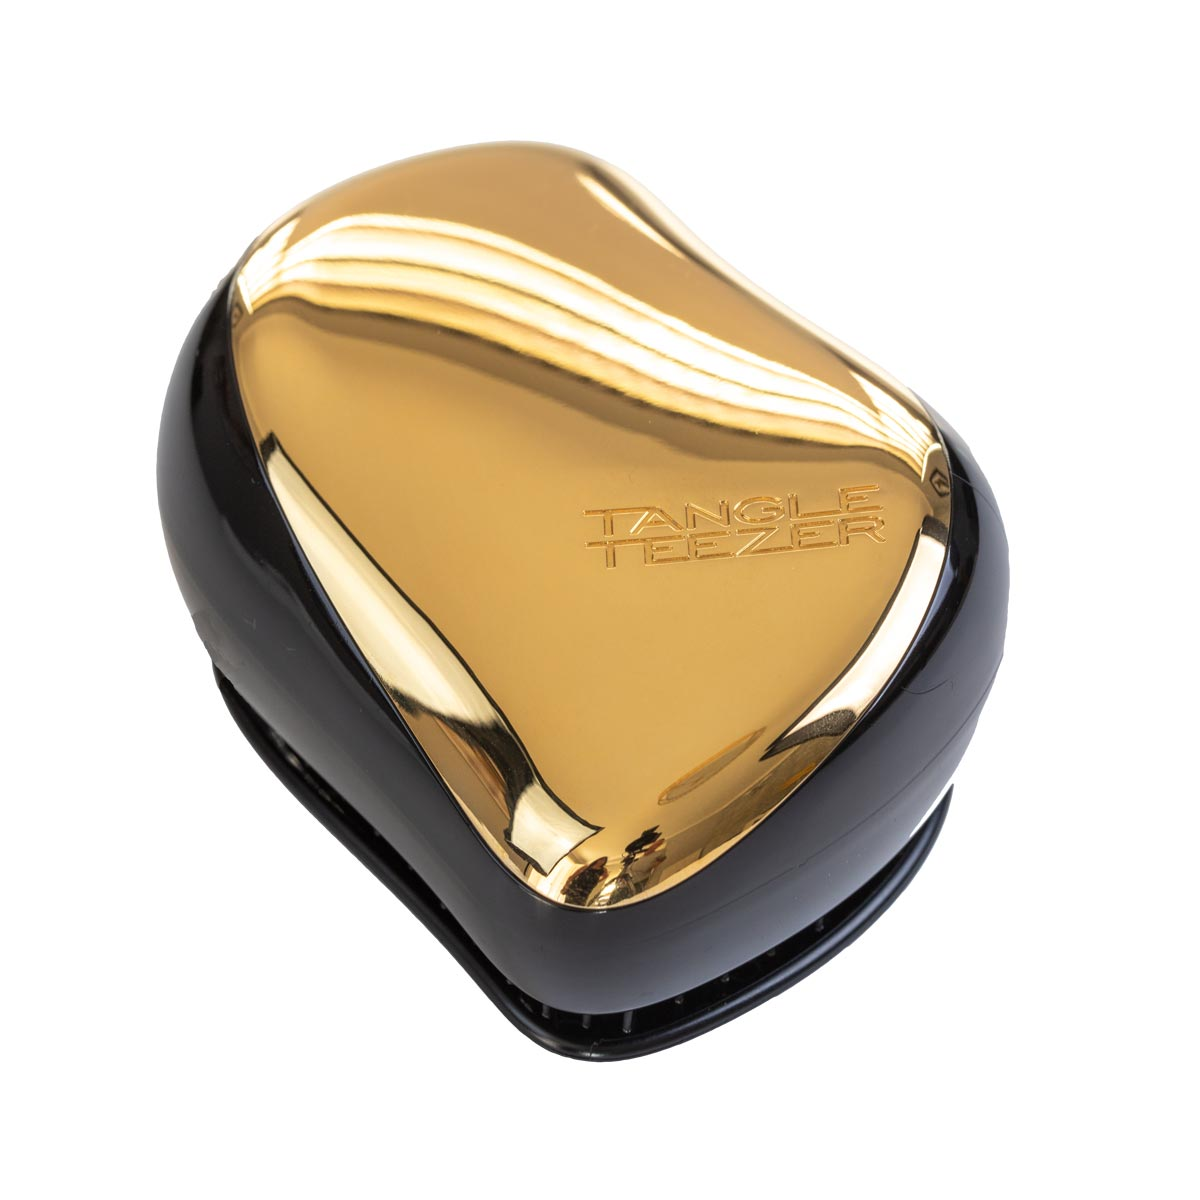 Elite Luxury Tangle Teezer